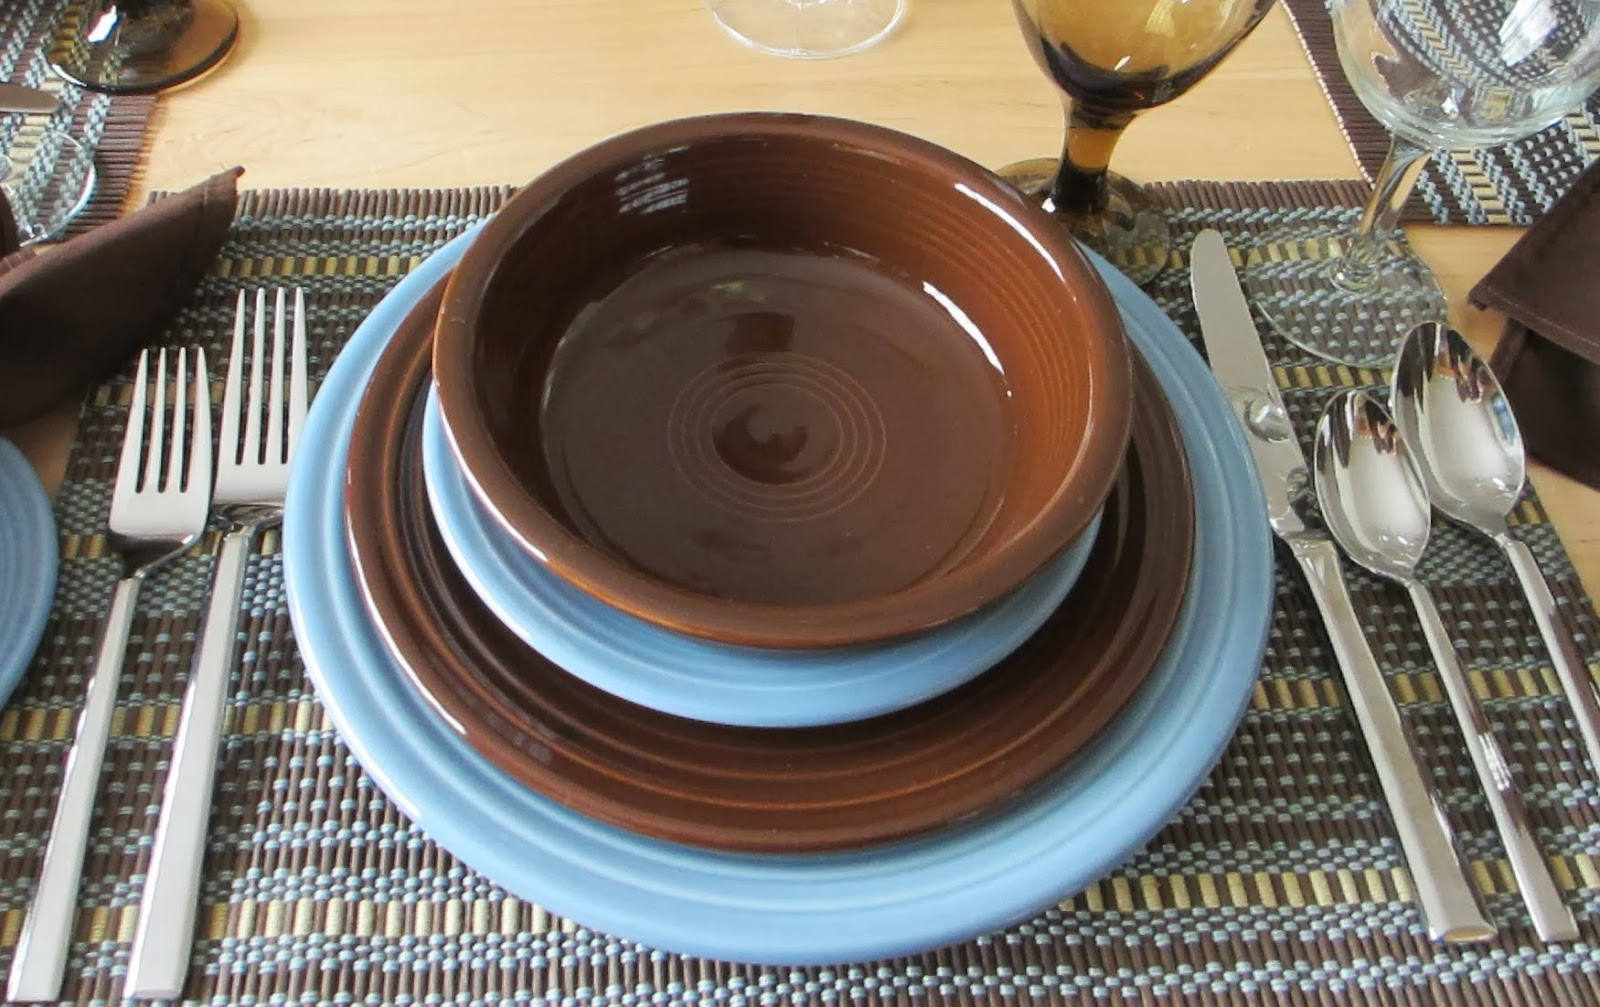 ... pat chose chocolate and retired periwinkle fiesta since these colors were found in the placemat · fiestaware tablescapes google ... & Fiestaware Chocolate - Pumpkin Chocolate Chip Cookies